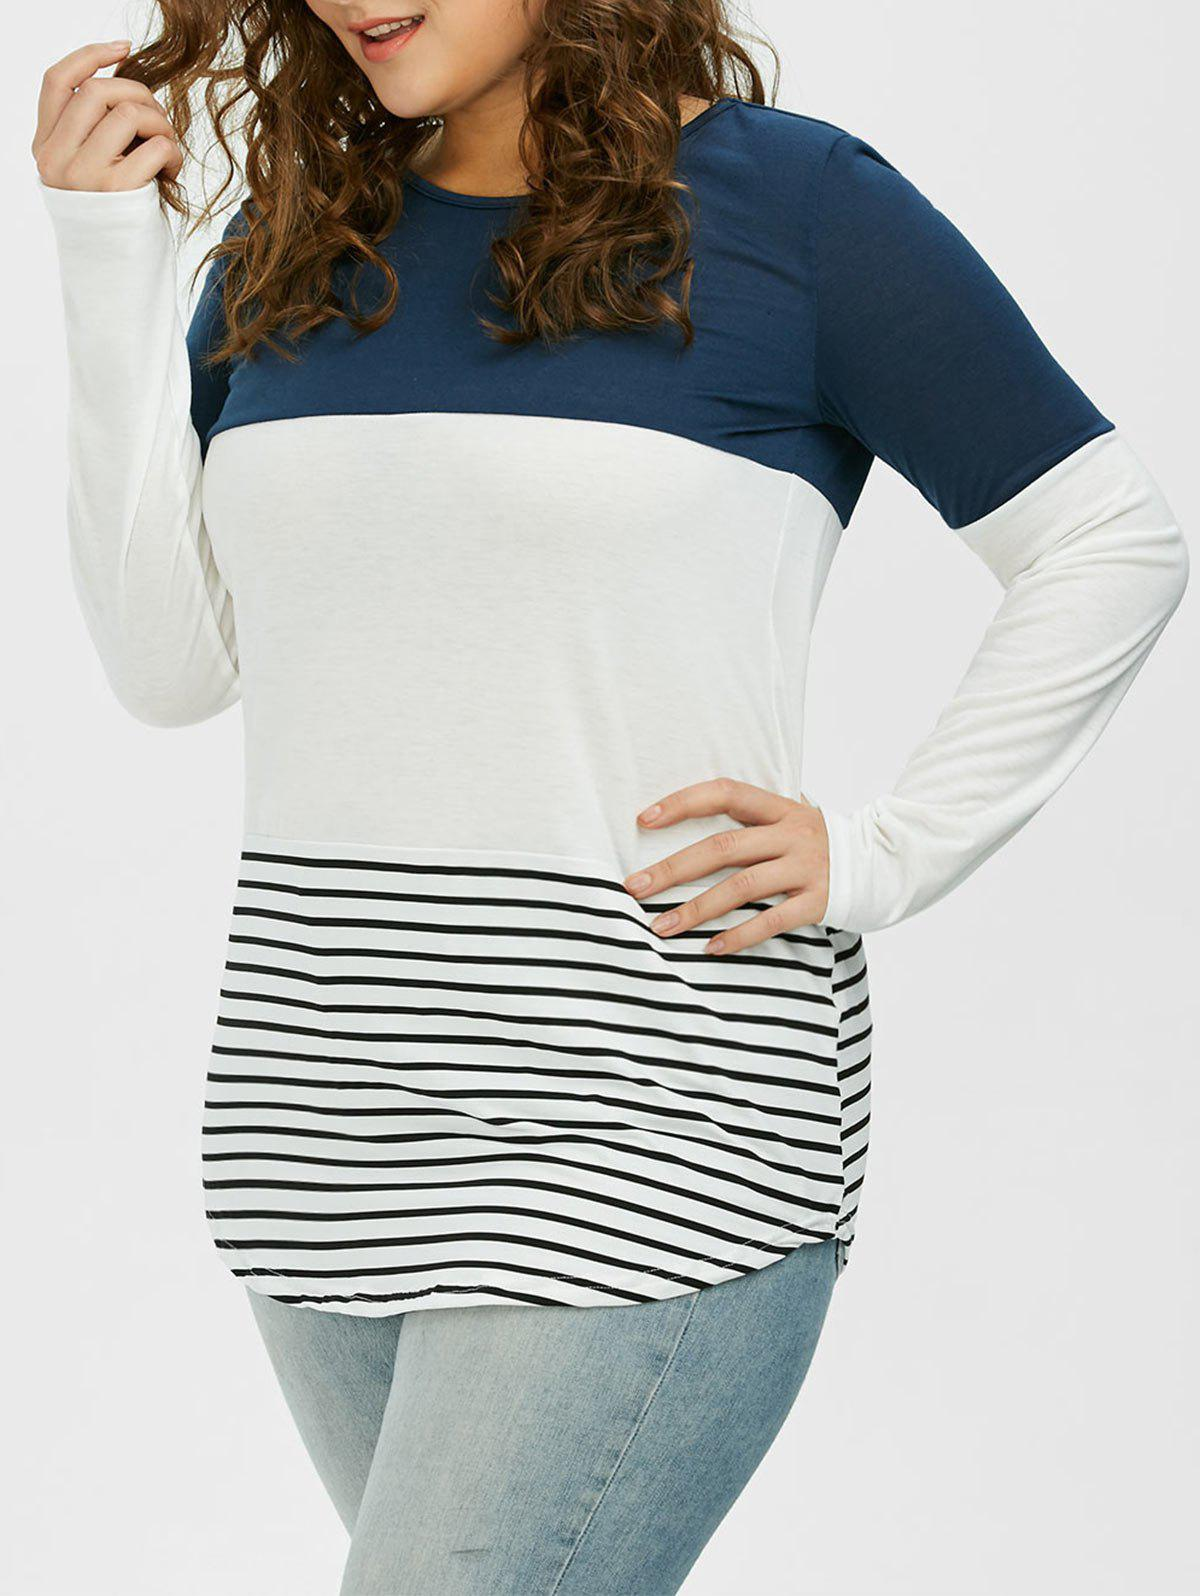 Color Block Stripe Plus Size TopWOMEN<br><br>Size: 3XL; Color: CADETBLUE; Material: Polyester; Shirt Length: Long; Sleeve Length: Short; Collar: Round Neck; Style: Casual; Season: Summer; Pattern Type: Striped; Weight: 0.3500kg; Package Contents: 1 x Top;